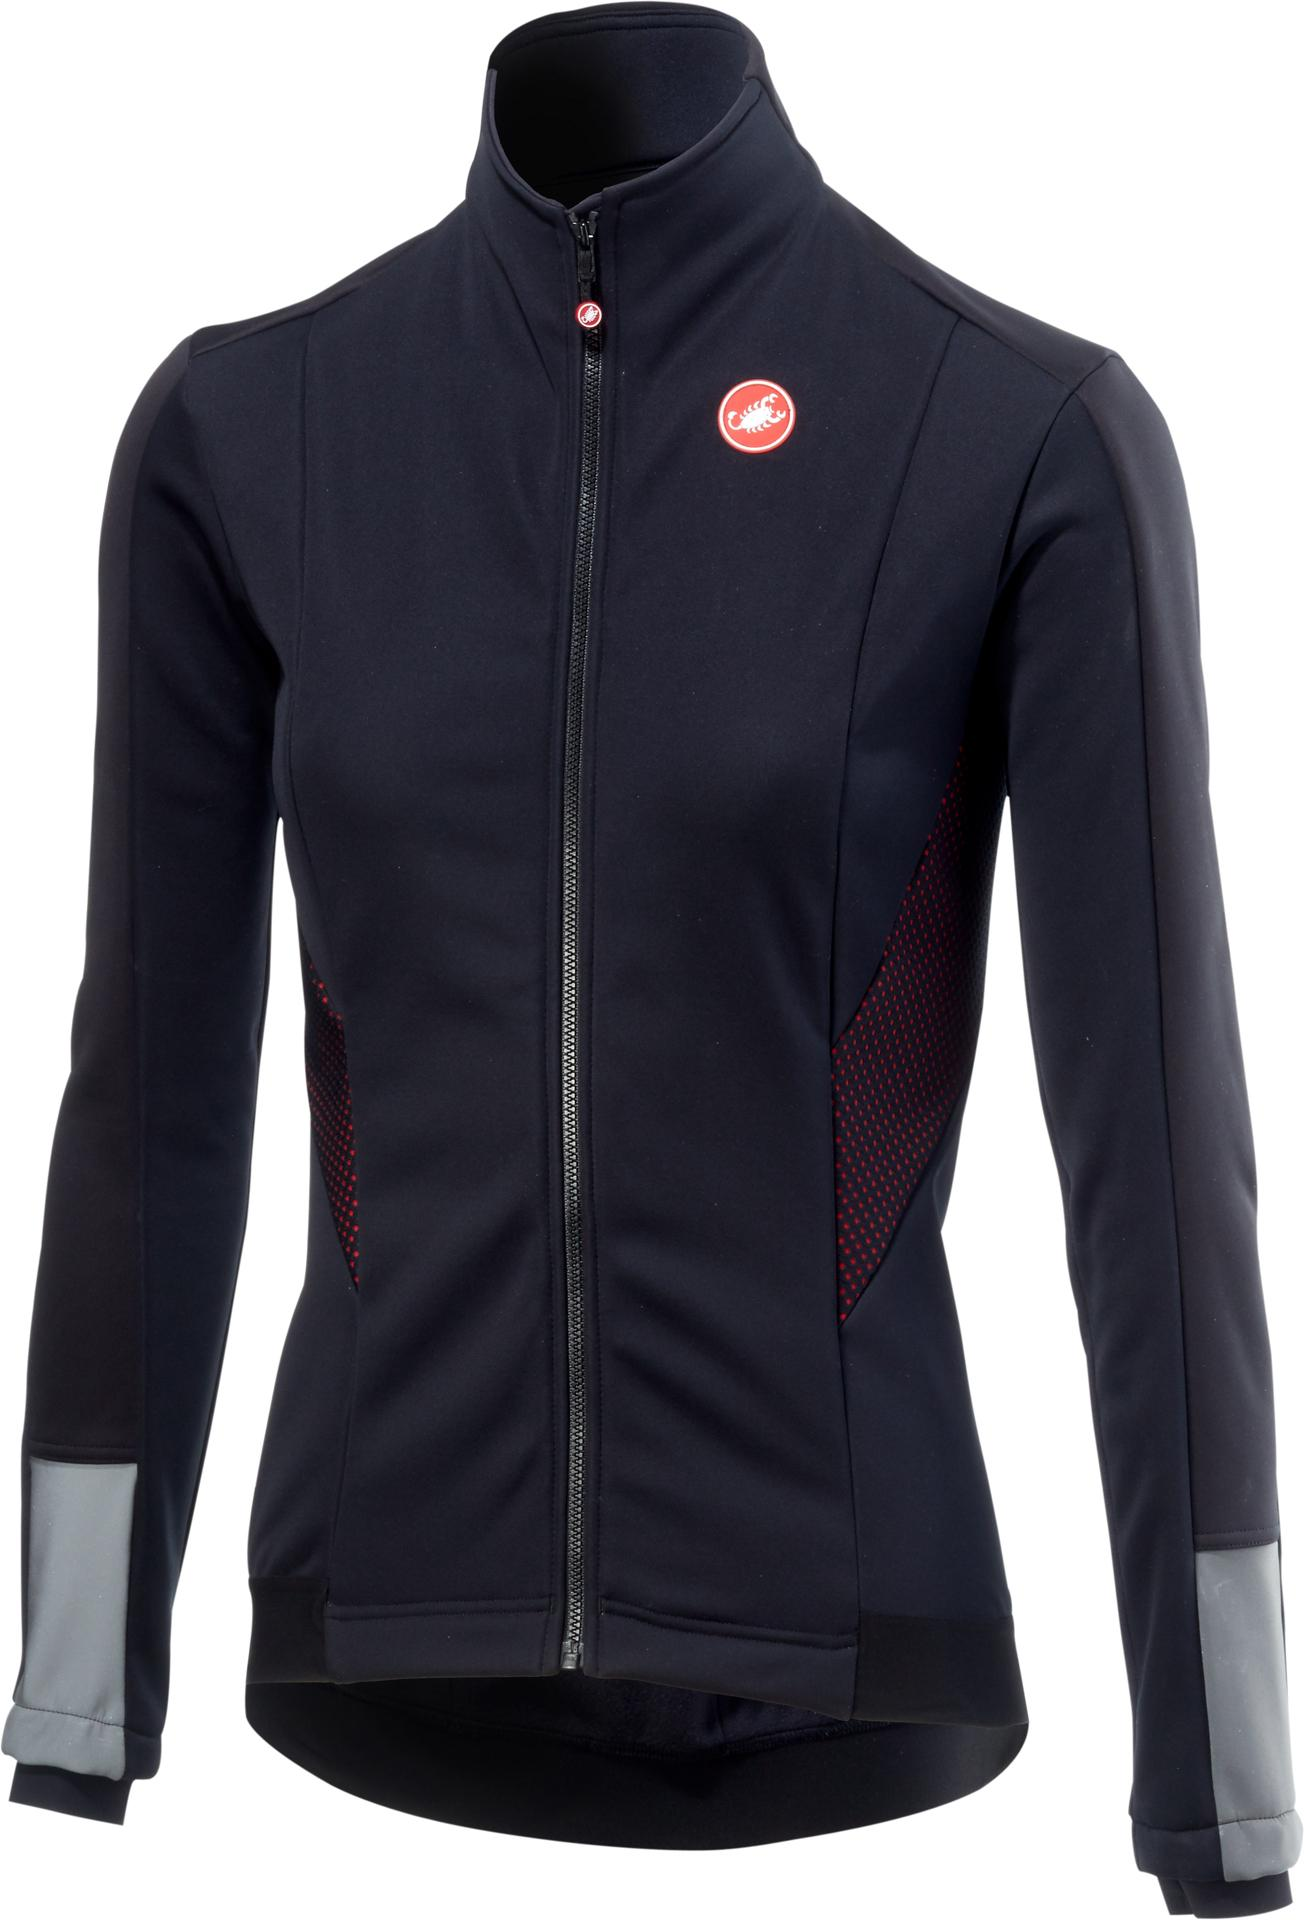 Castelli Fietsjack Dames Zwart  / CA Mortirolo 3 W Jacket Light Black